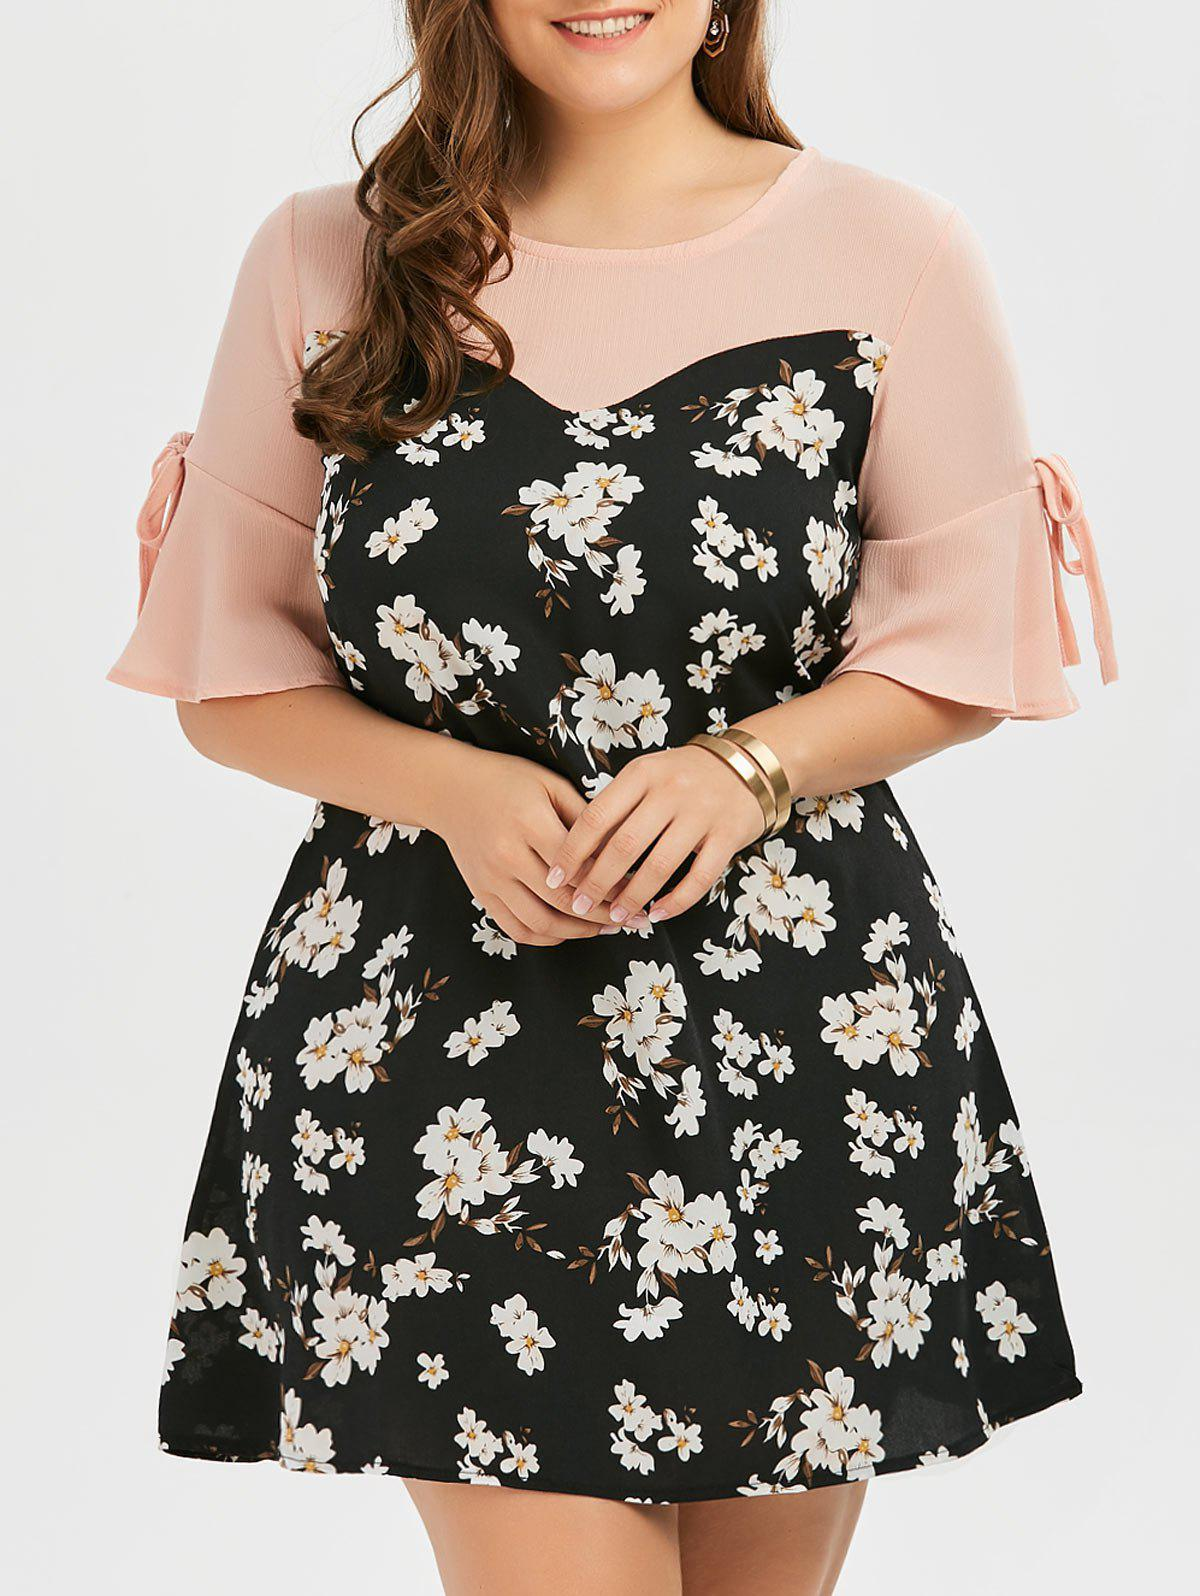 Plus Size Bow Tie Floral Chiffon Dress with Flare Sleeve stretchy ruffled garter 2pcs with bow tie